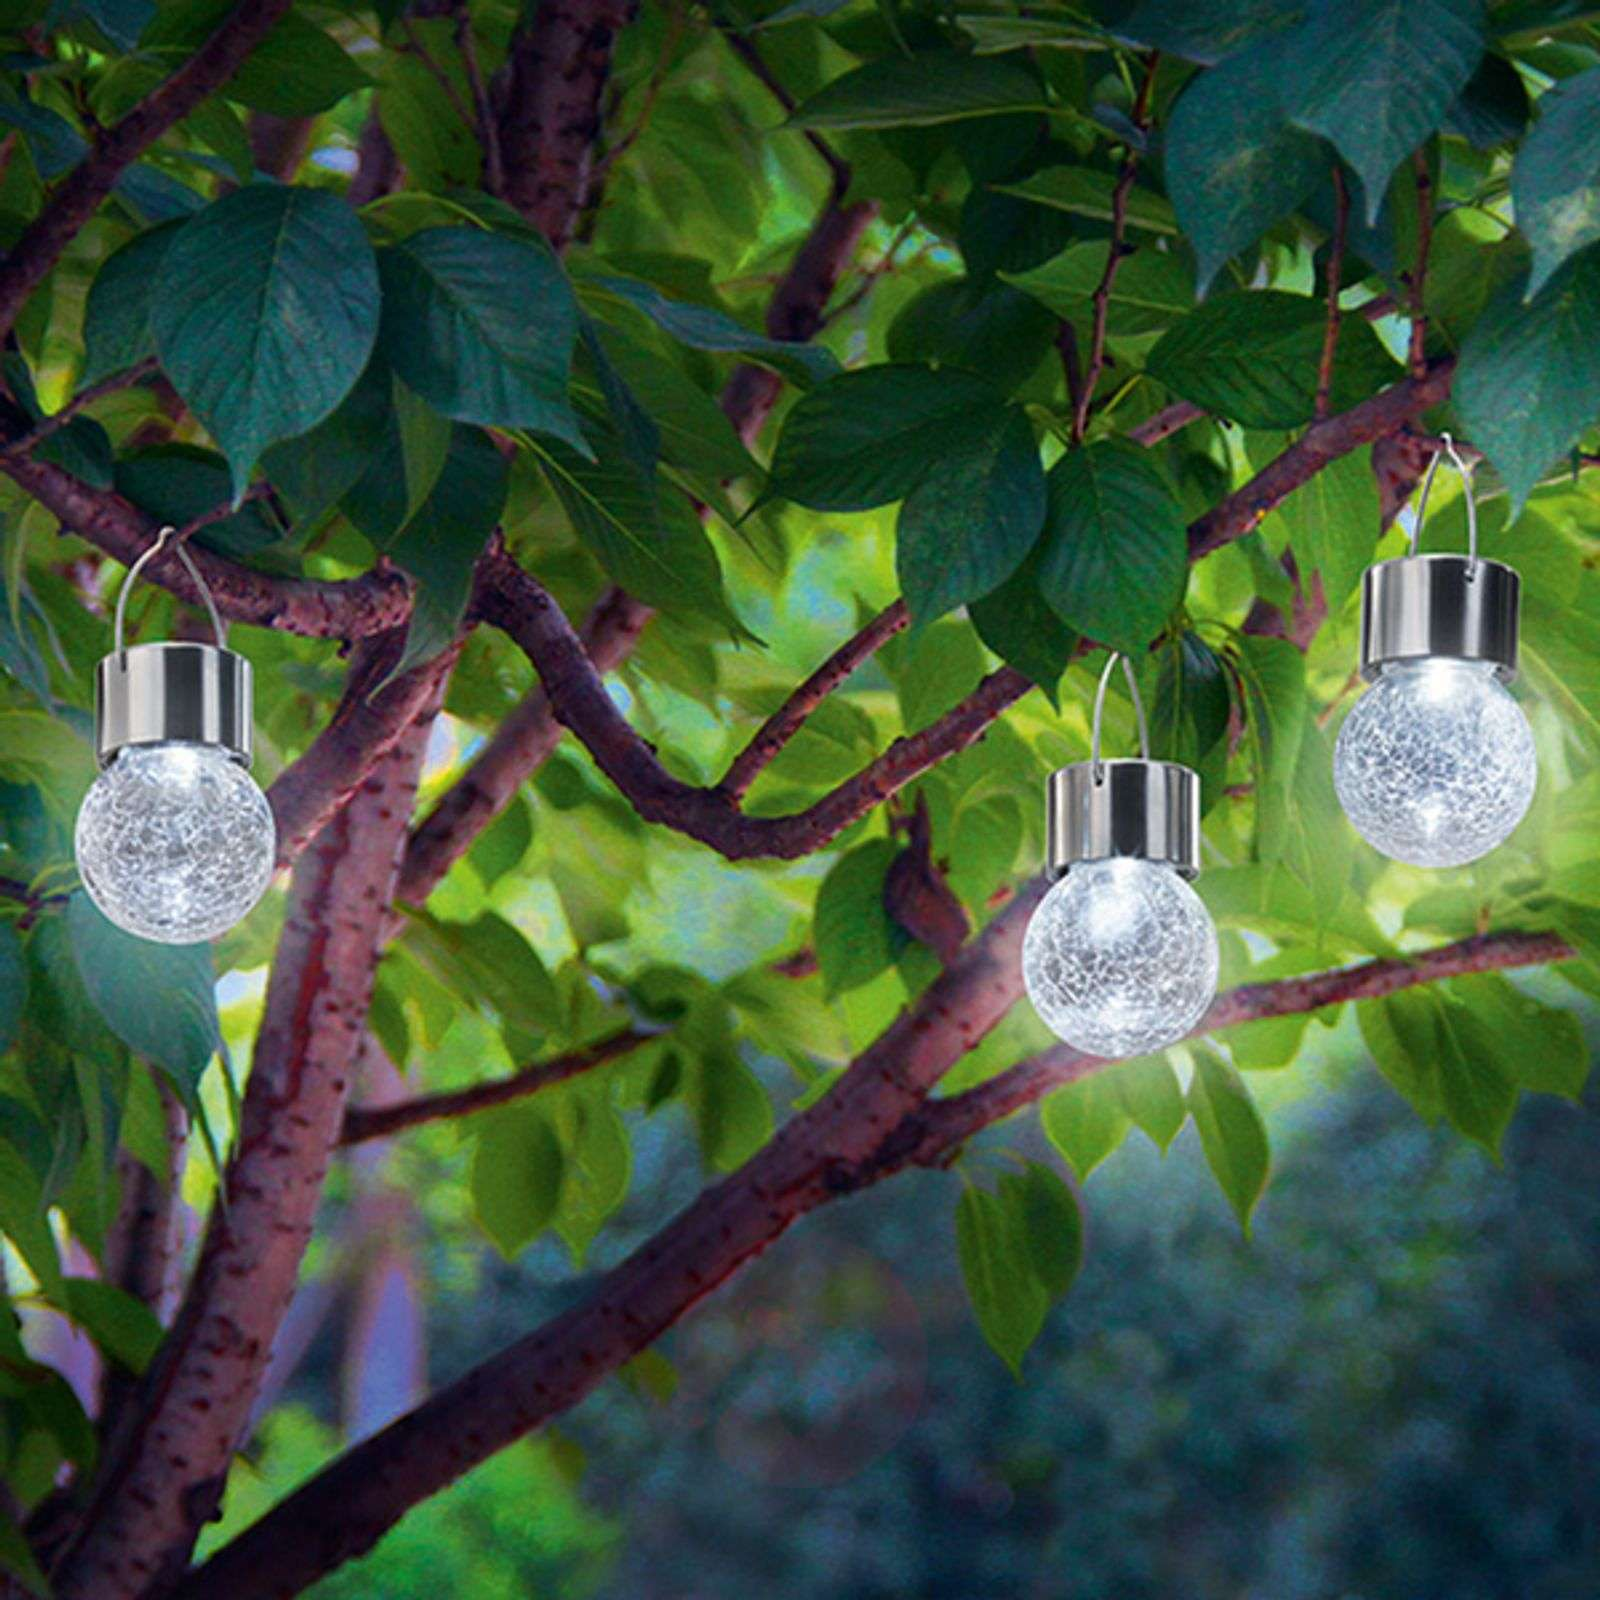 Zestaw 3 lamp solarnych LED Crackle Ball 6 000 K-3012536-01